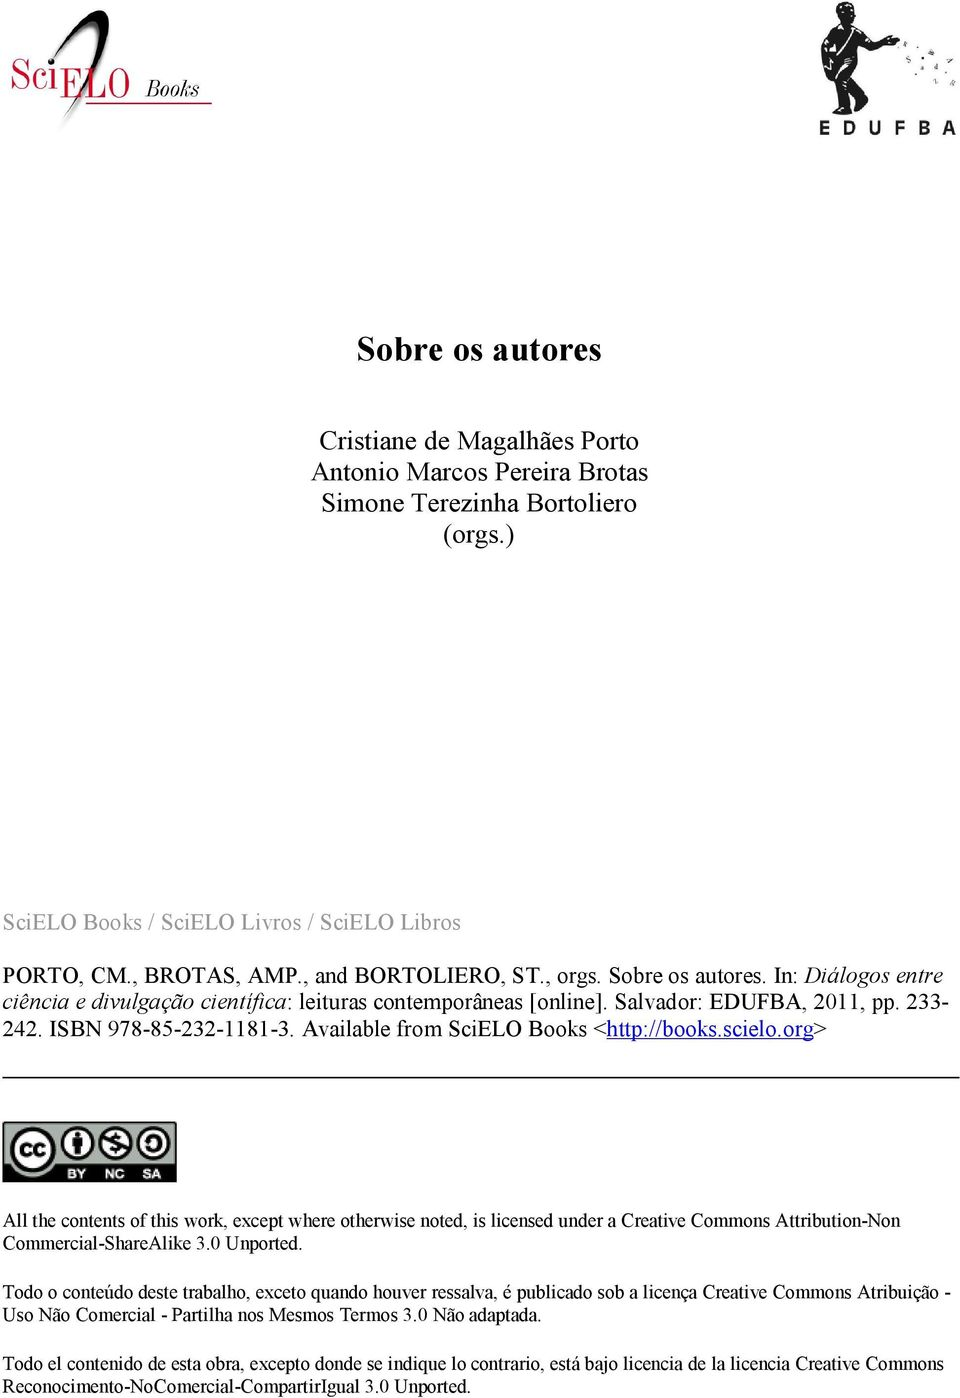 Available from SciELO Books <http://books.scielo.org> All the contents of this work, except where otherwise noted, is licensed under a Creative Commons Attribution-Non Commercial-ShareAlike 3.